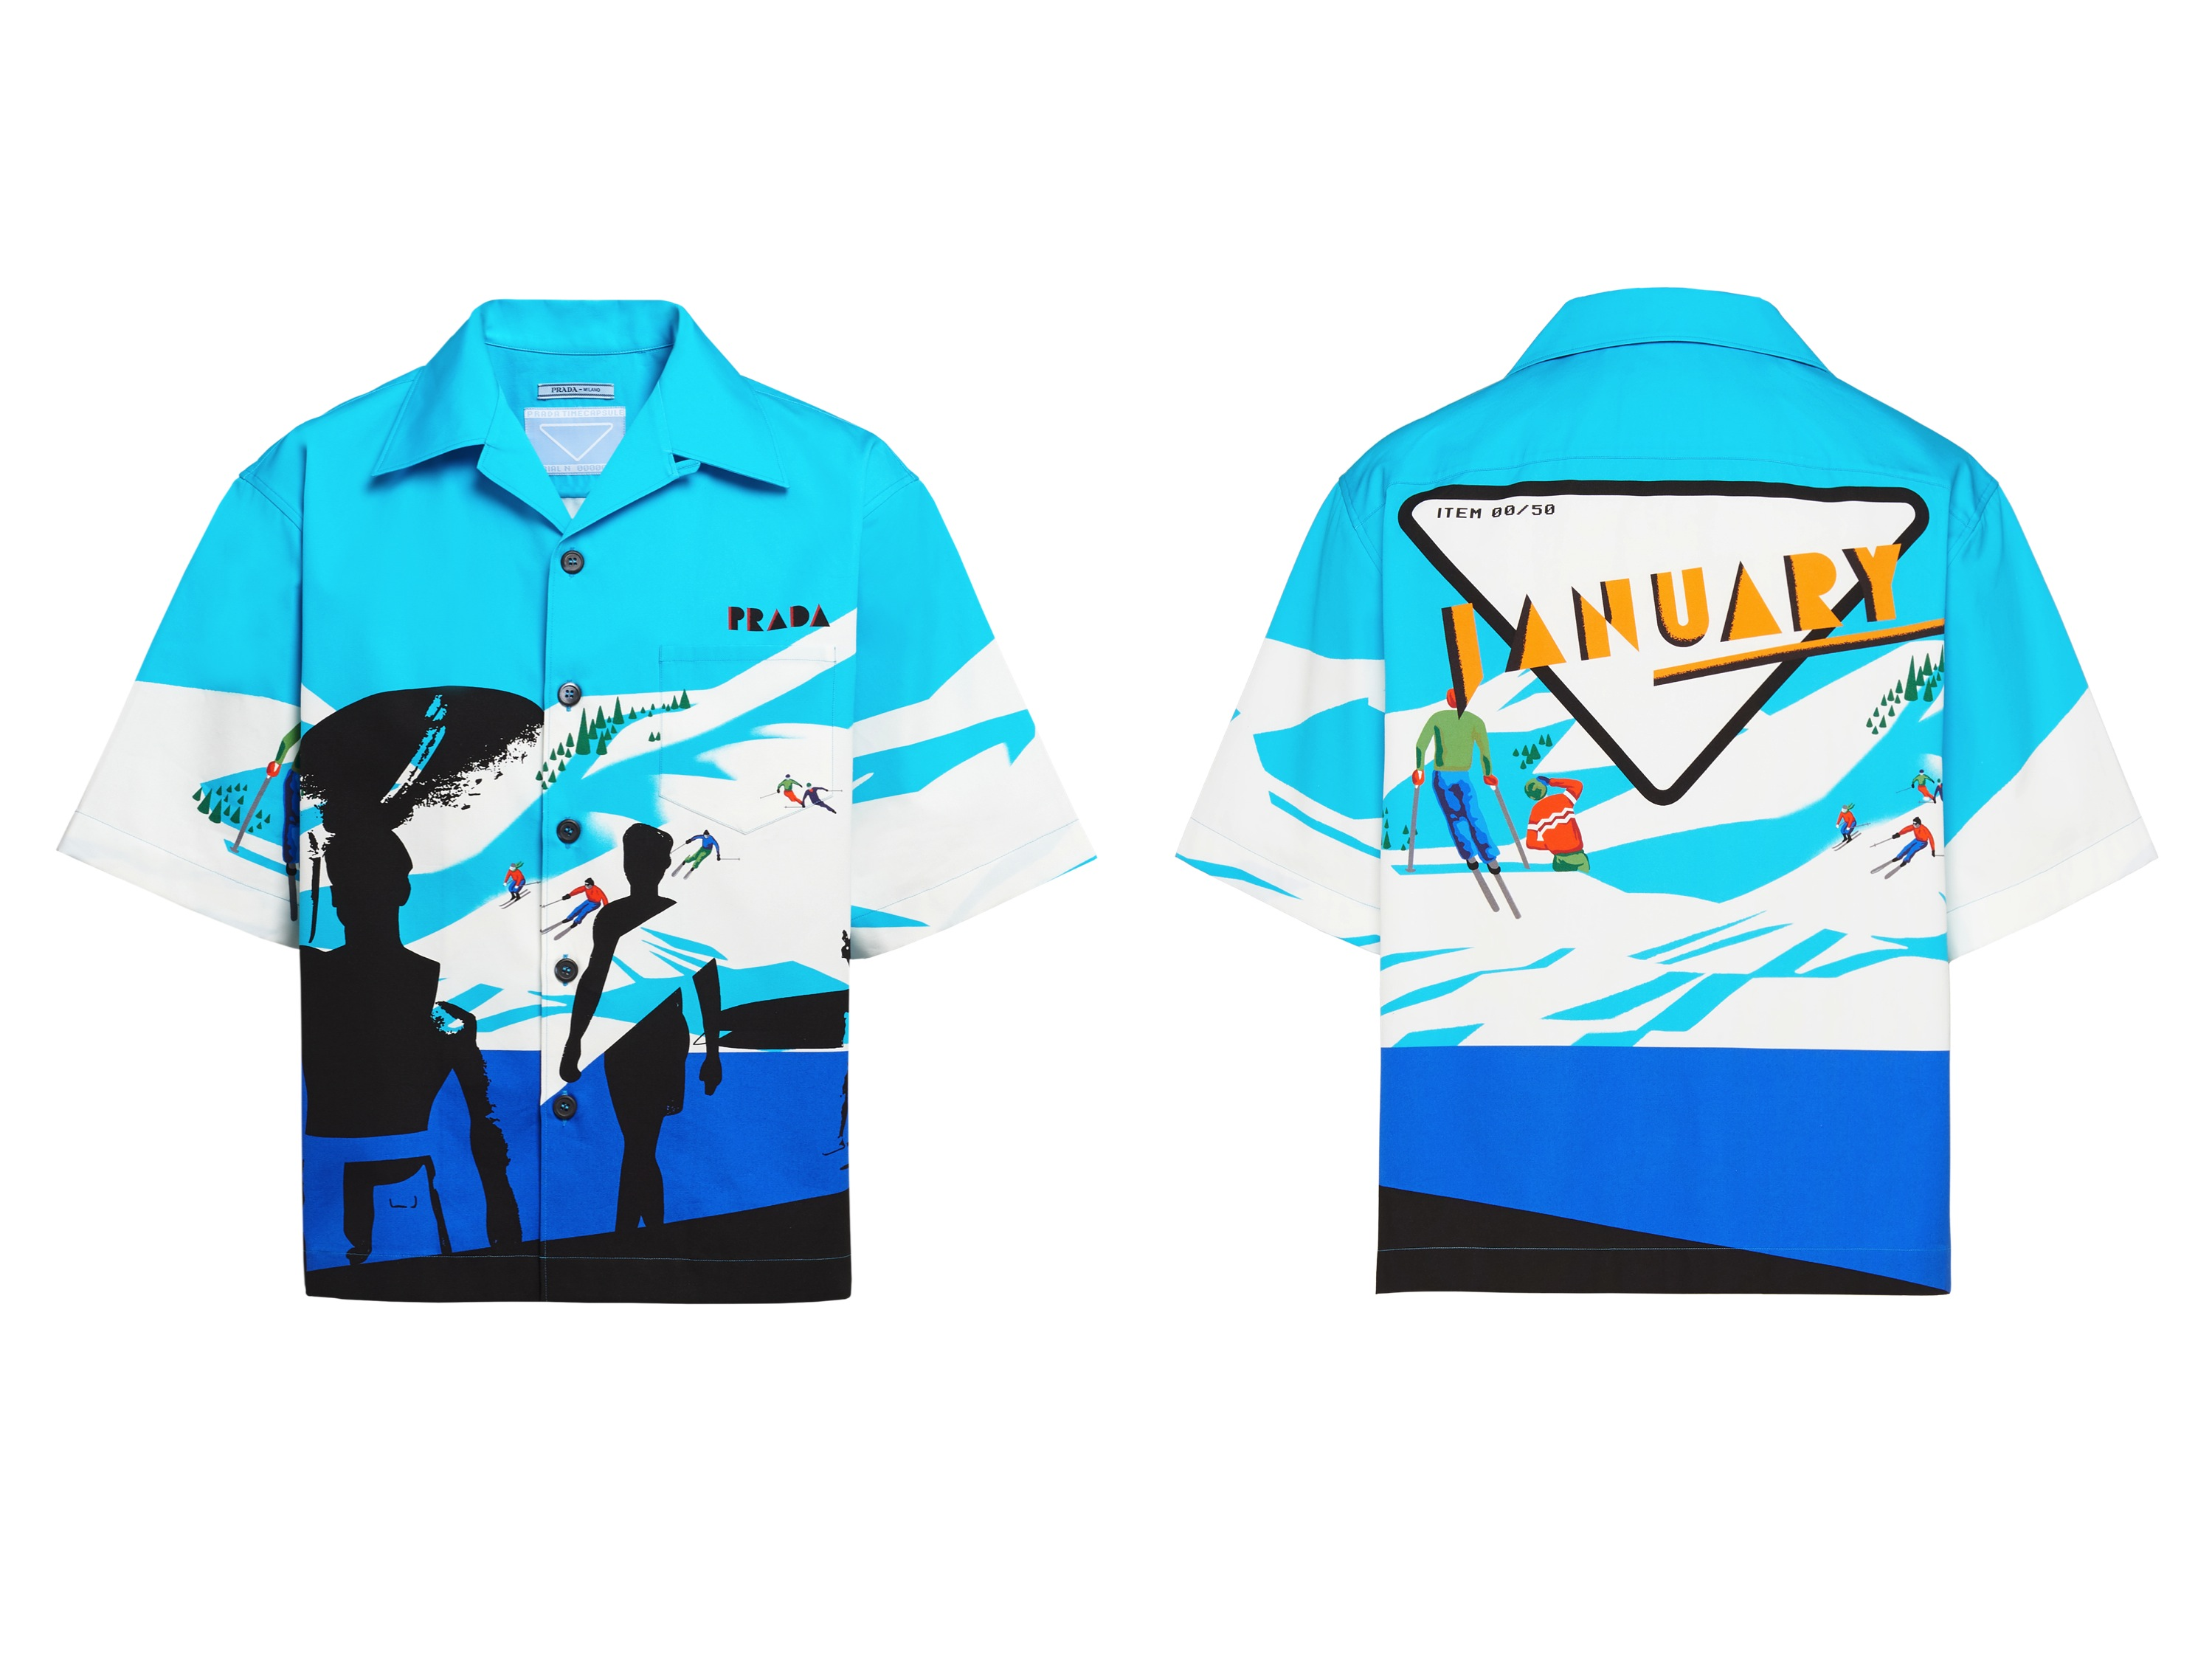 The Prada Time Capsule camp shirt dropping Jan. 2.